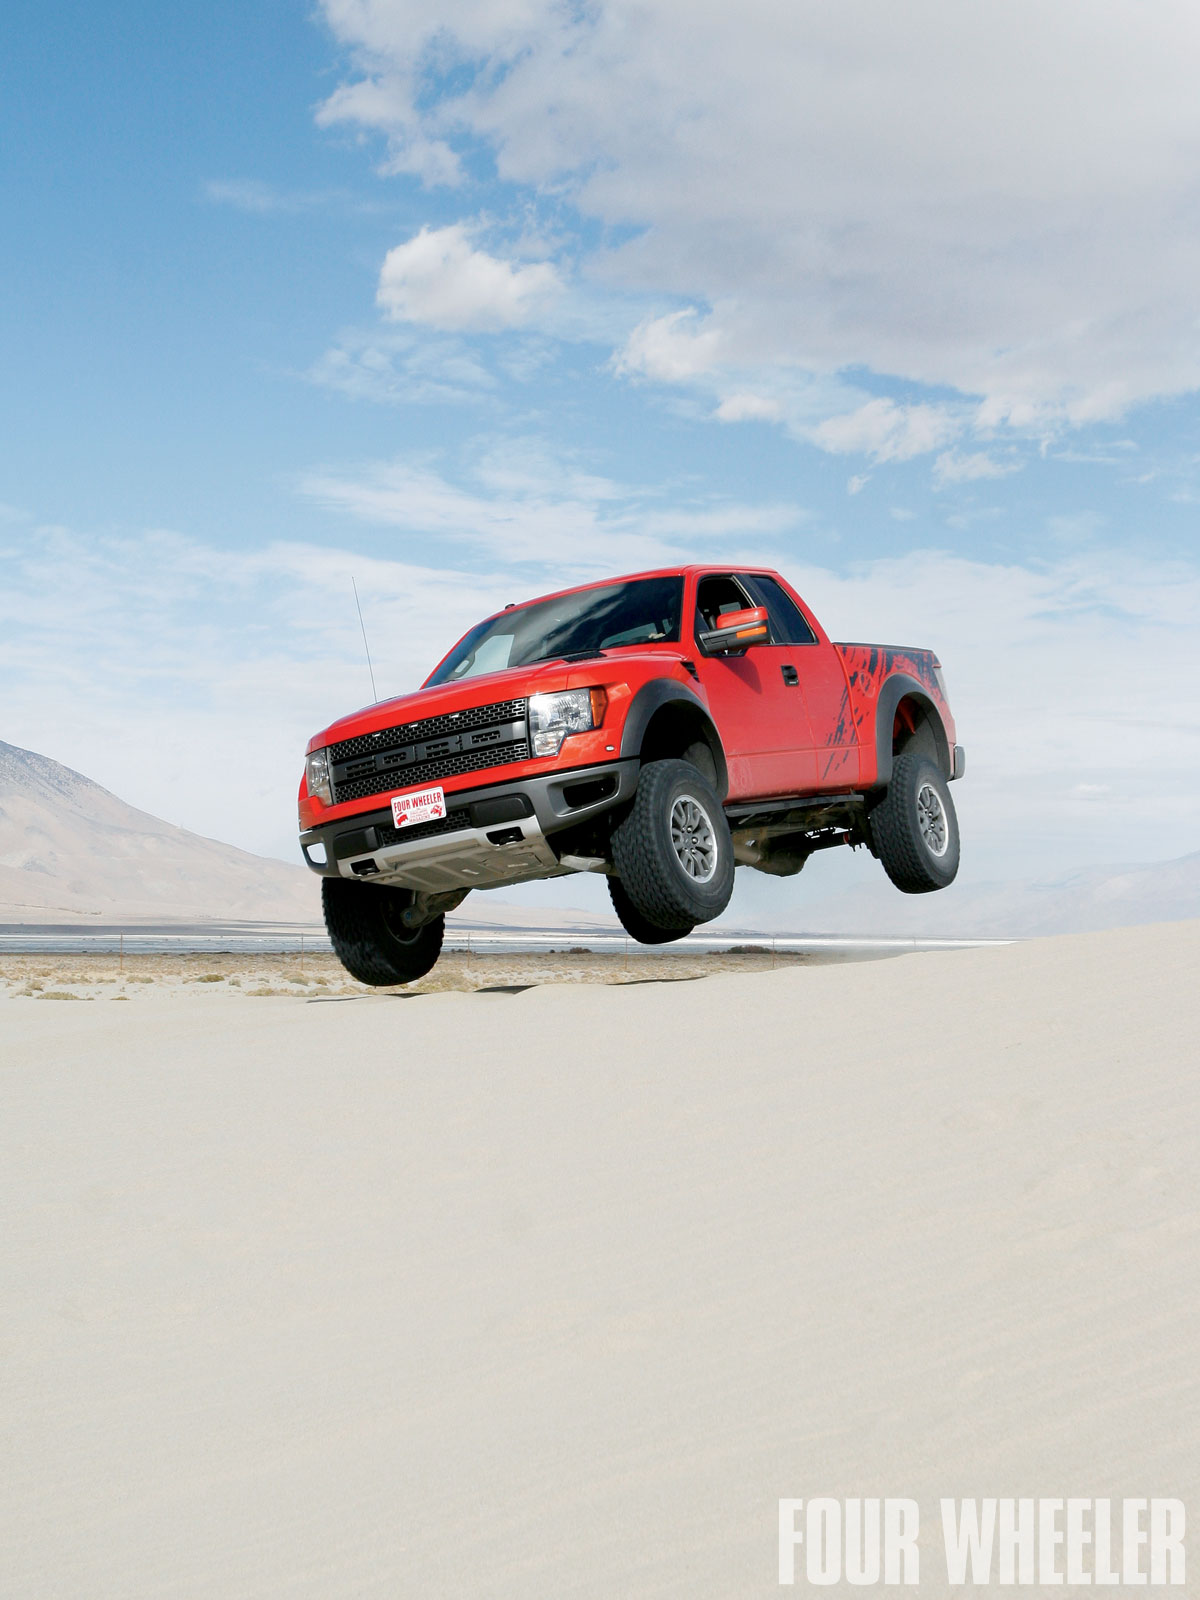 Ford Svt Raptor Front Airborne Shot Photo 30207247